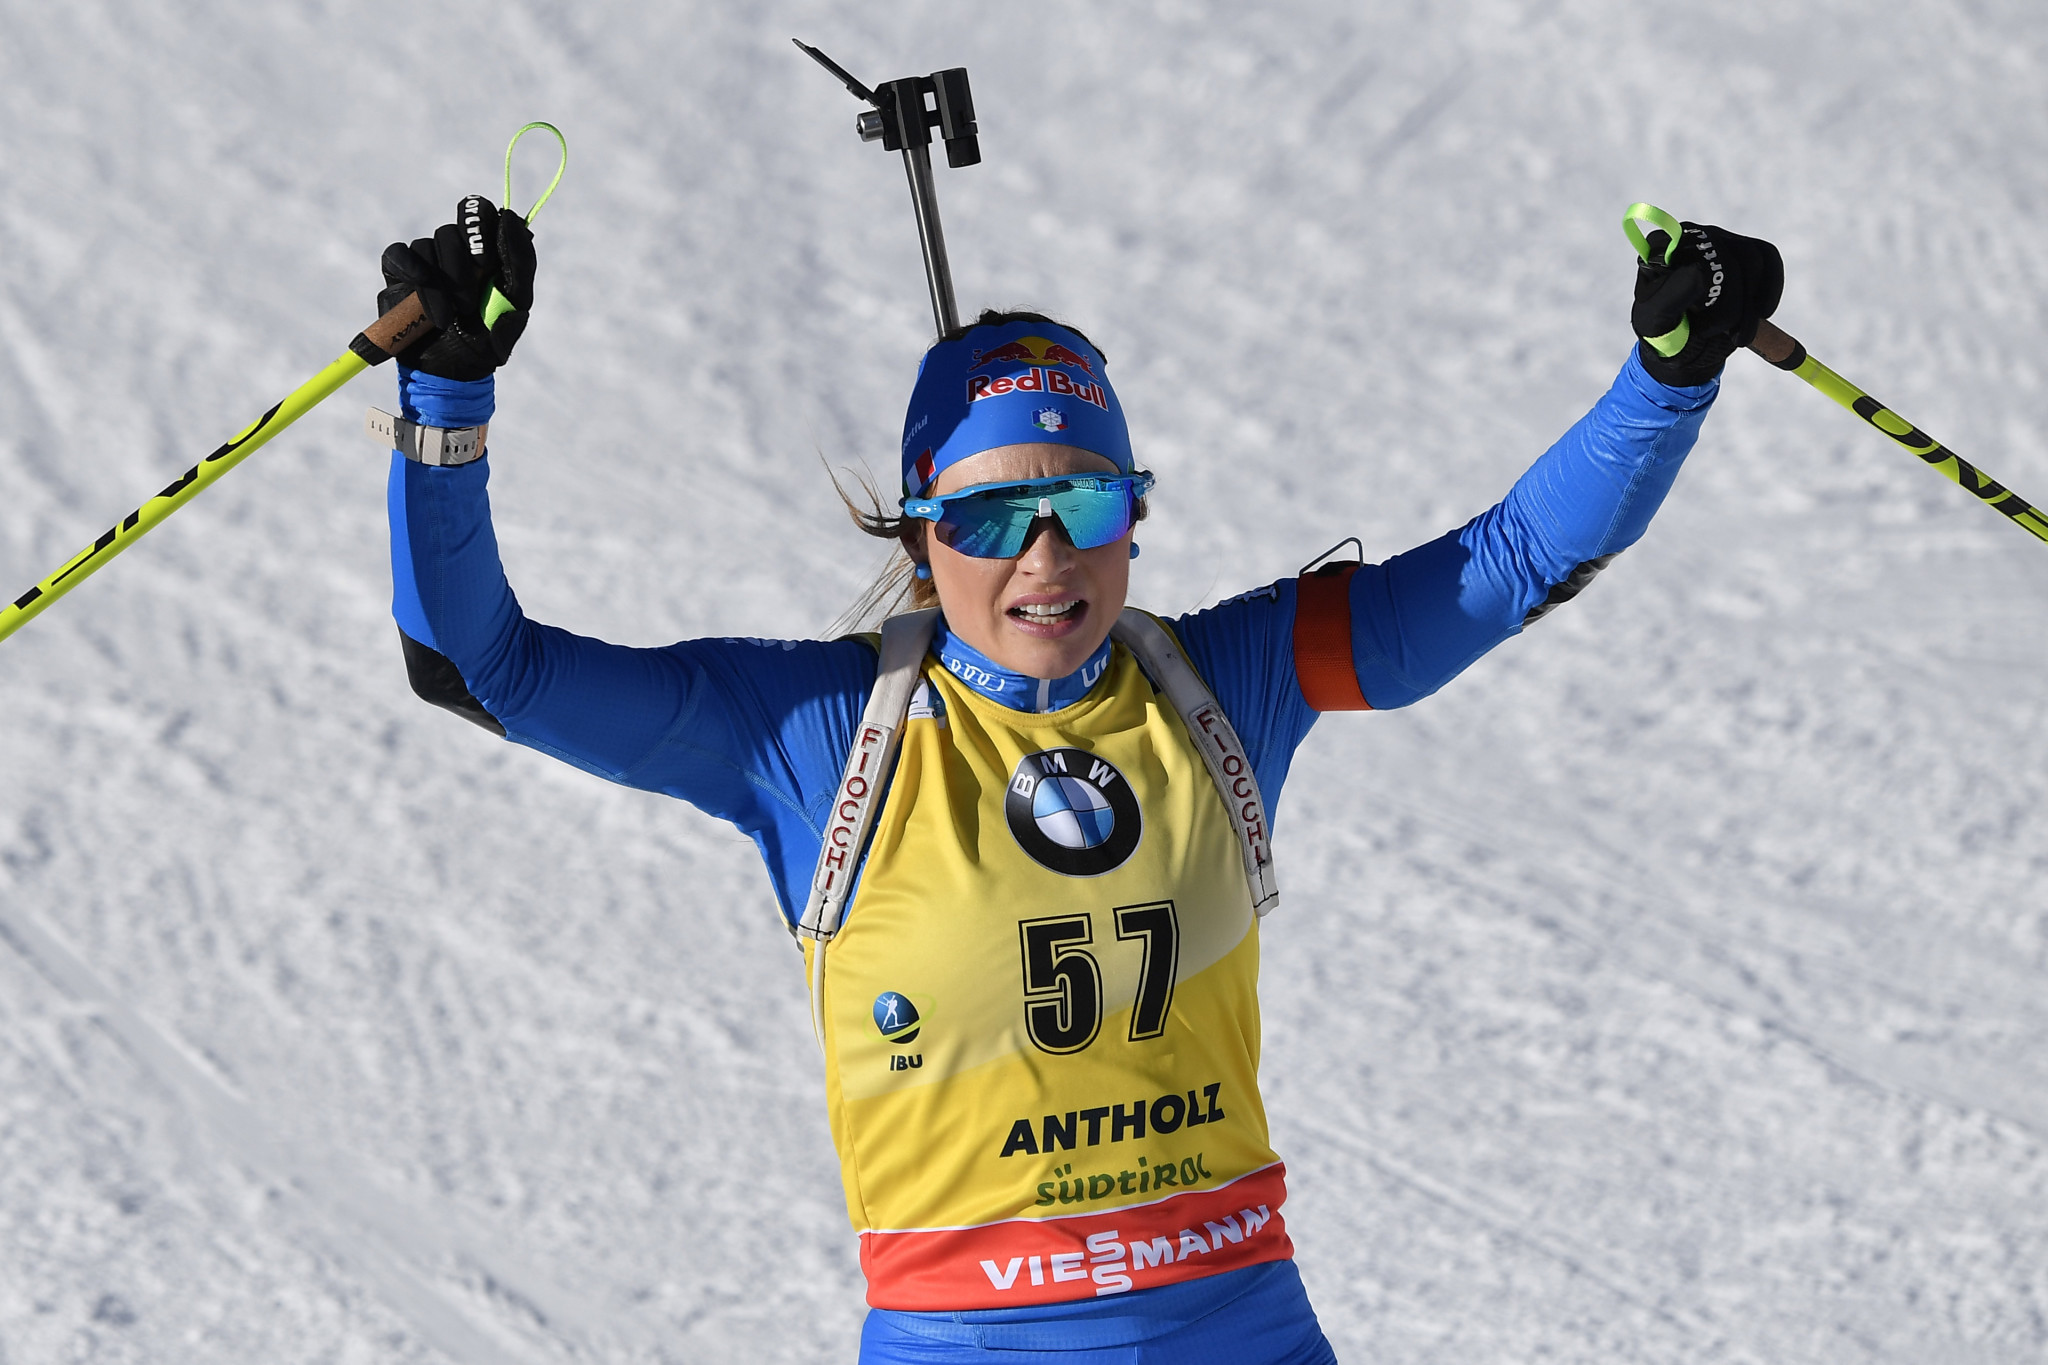 Wierer wins women's 15km individual event to claim second gold at Biathlon World Championships